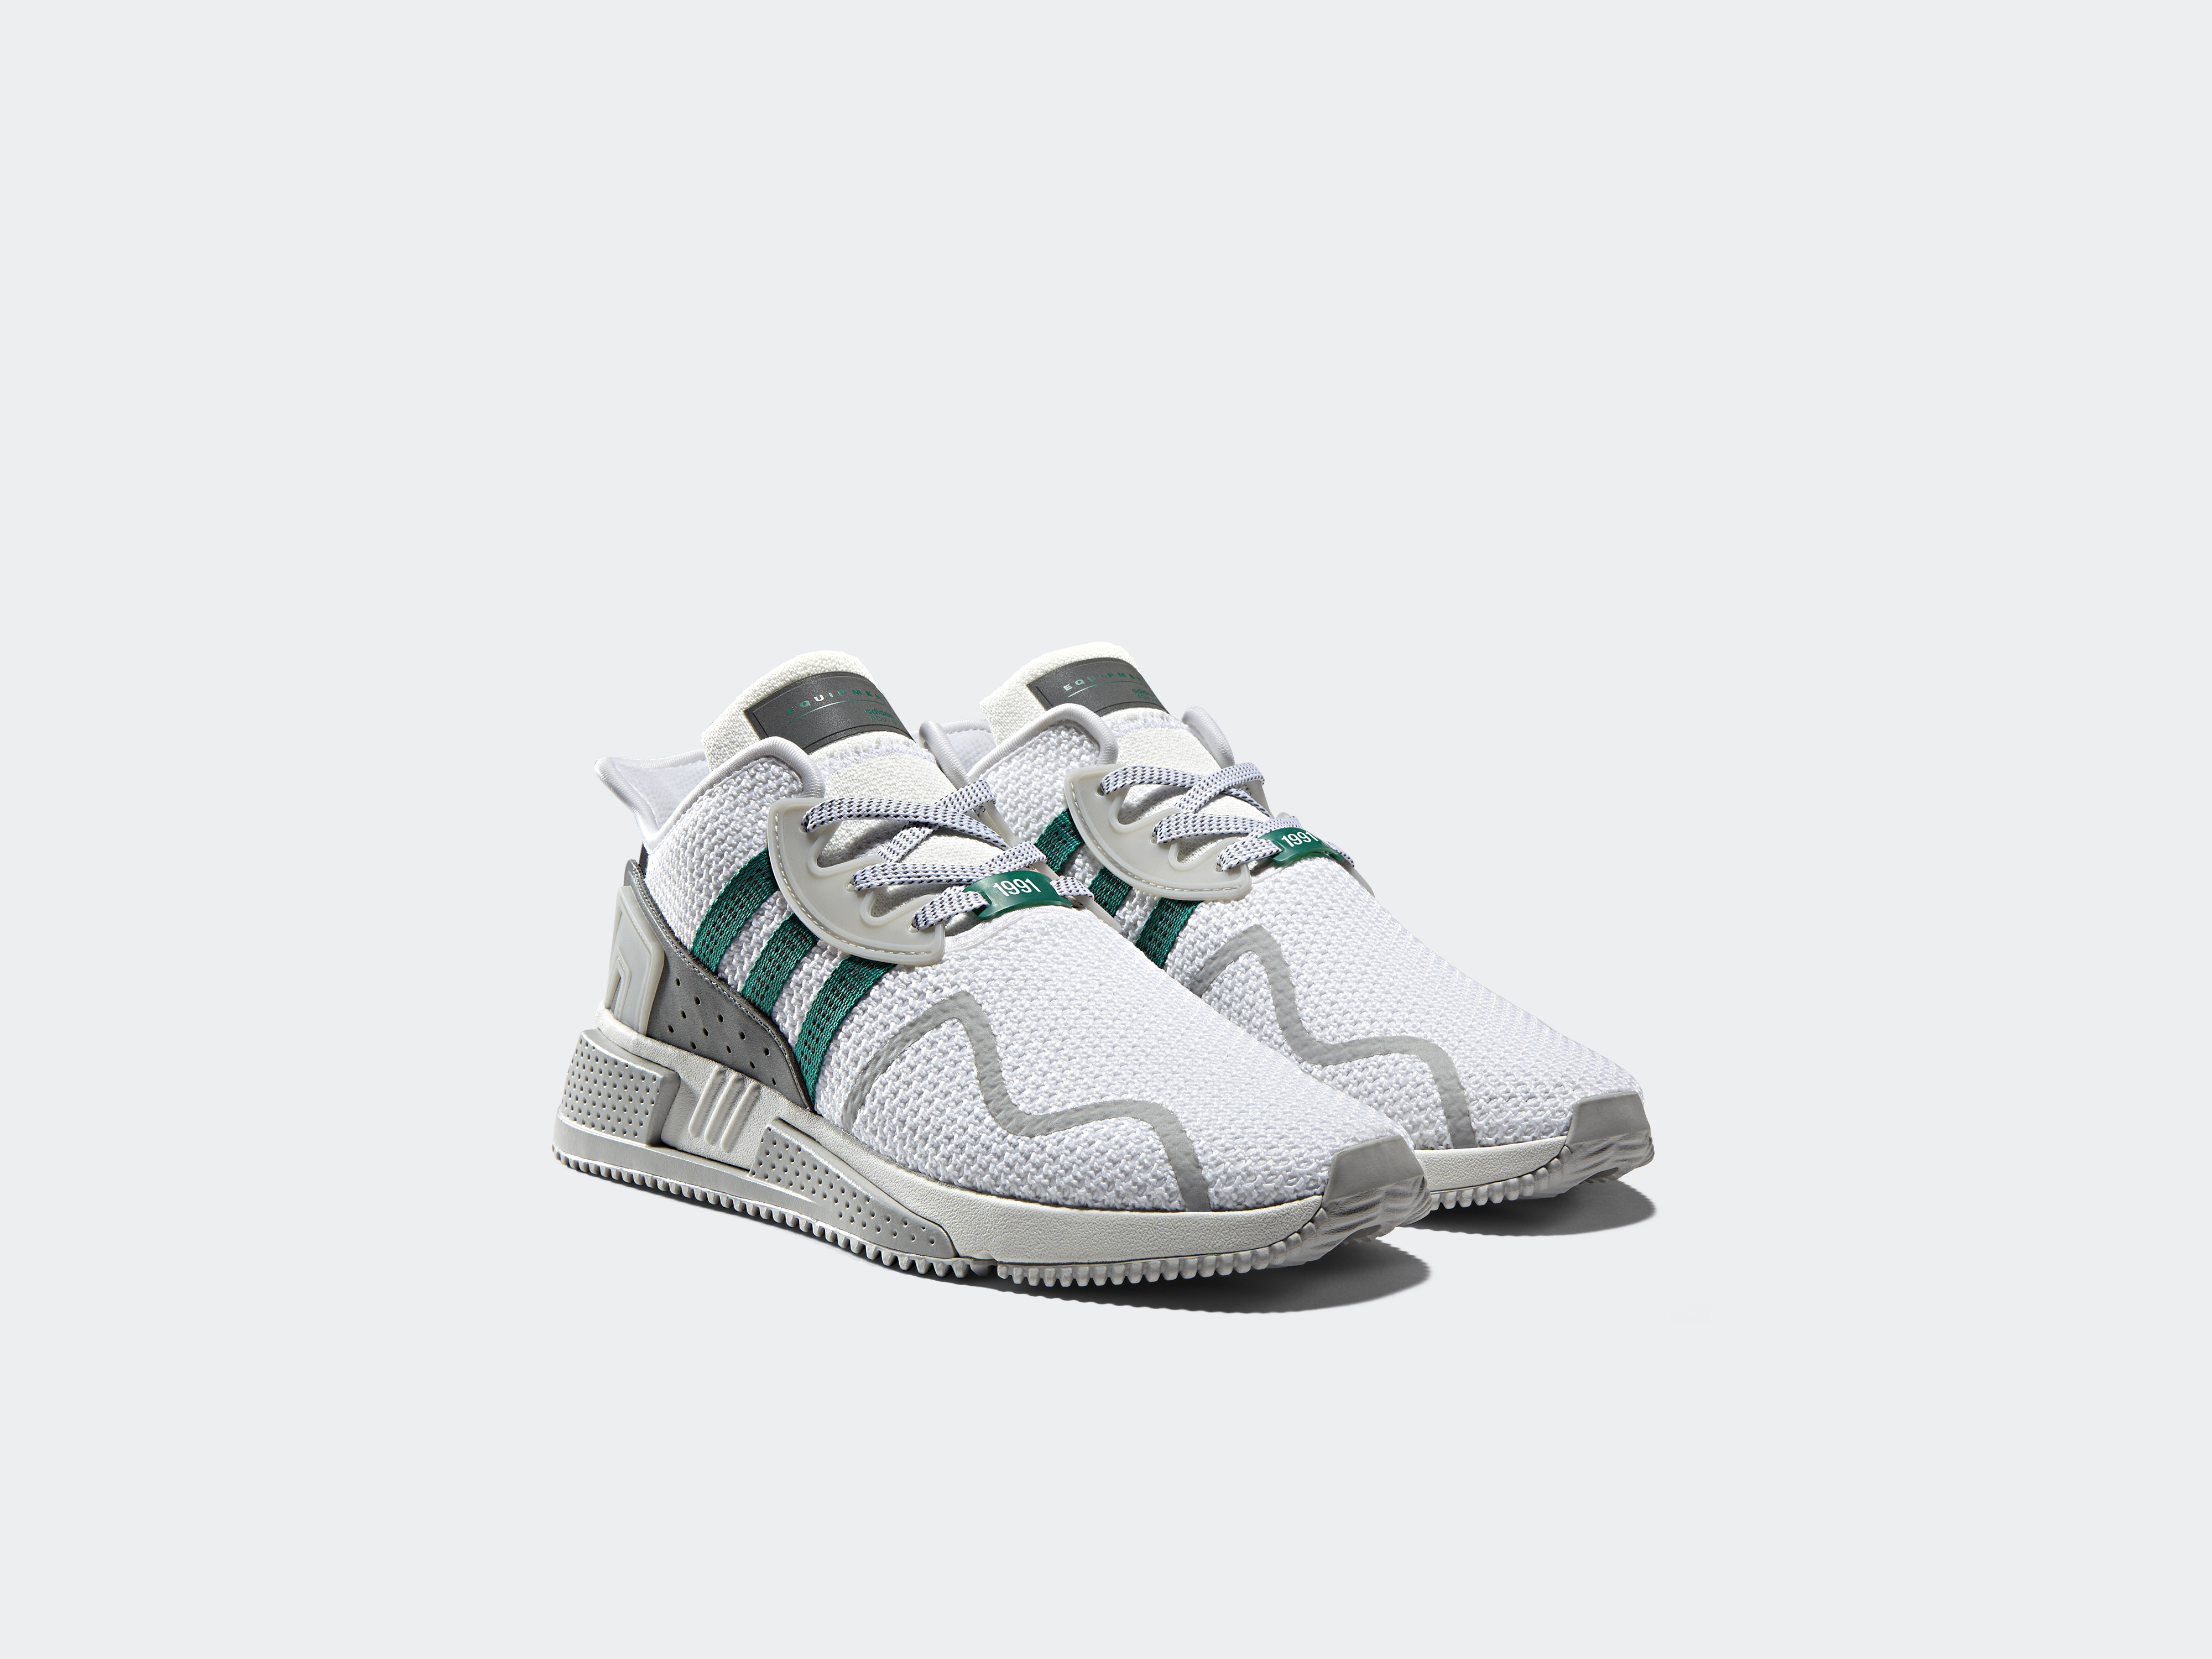 outlet store 281aa f59e0 The EQT Cushion ADV is the Next Step for adidas Originals ...